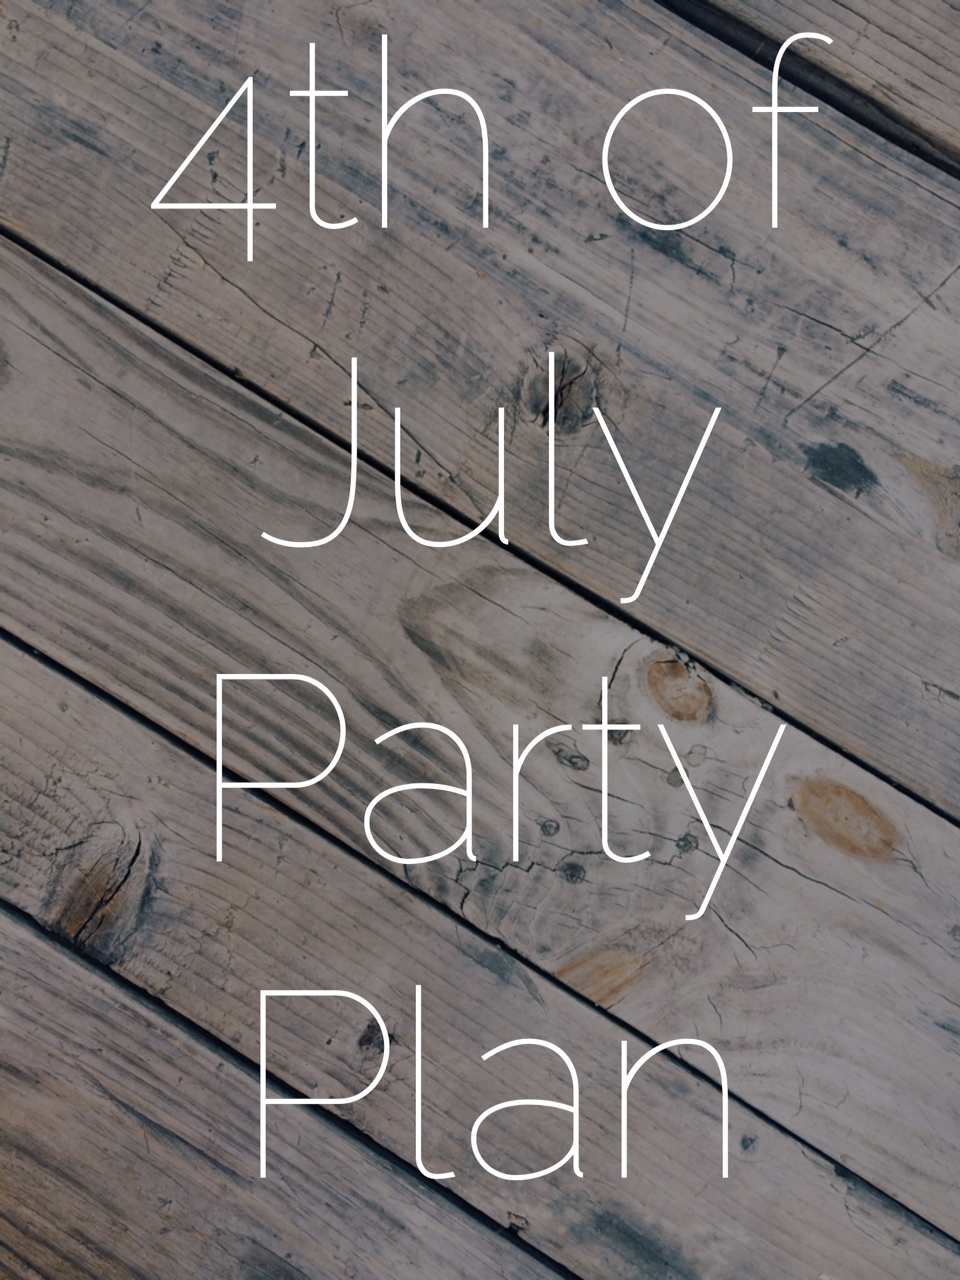 4th of July Party Plans